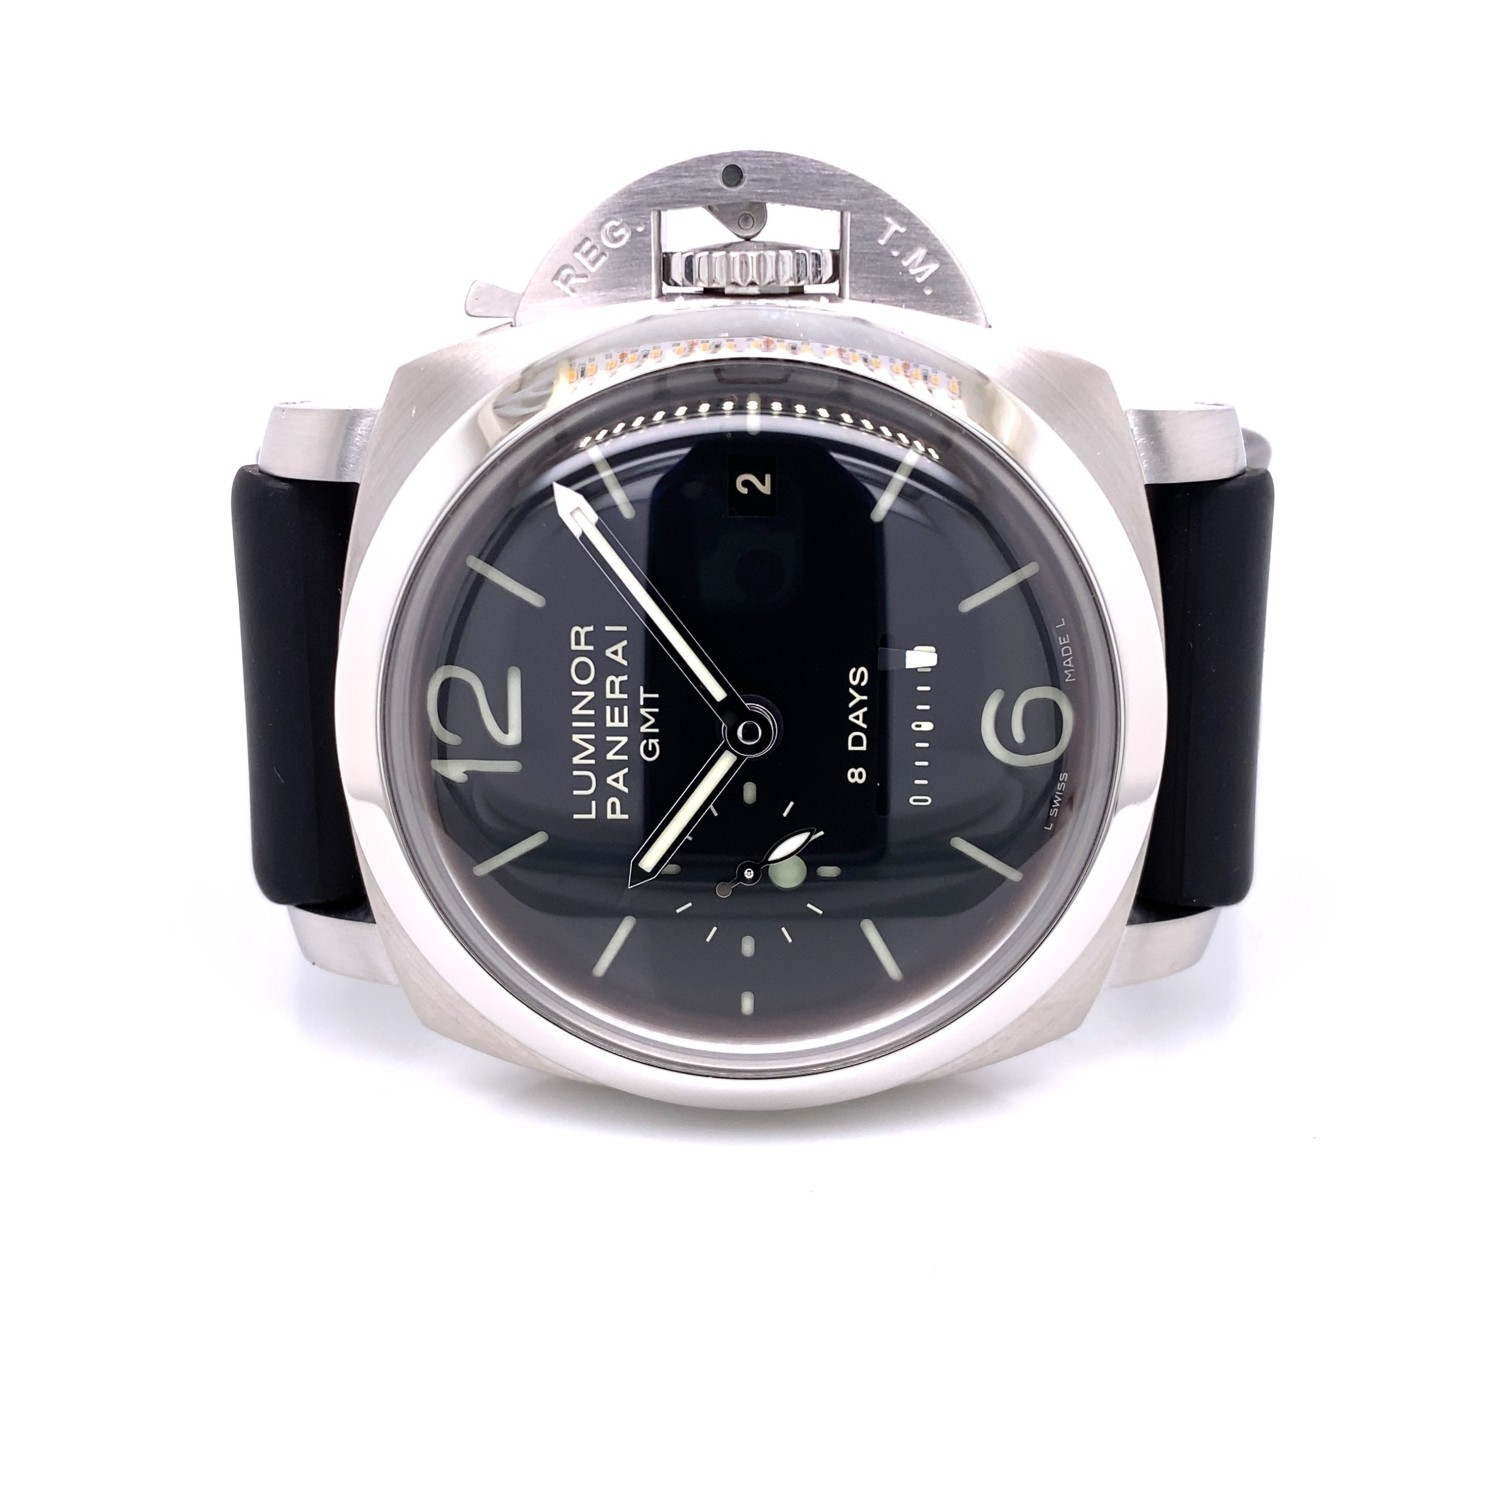 Panerai PAM00233 1950 Luminor 8 Day Power Reserve GMT PAM00233 MYL12Z